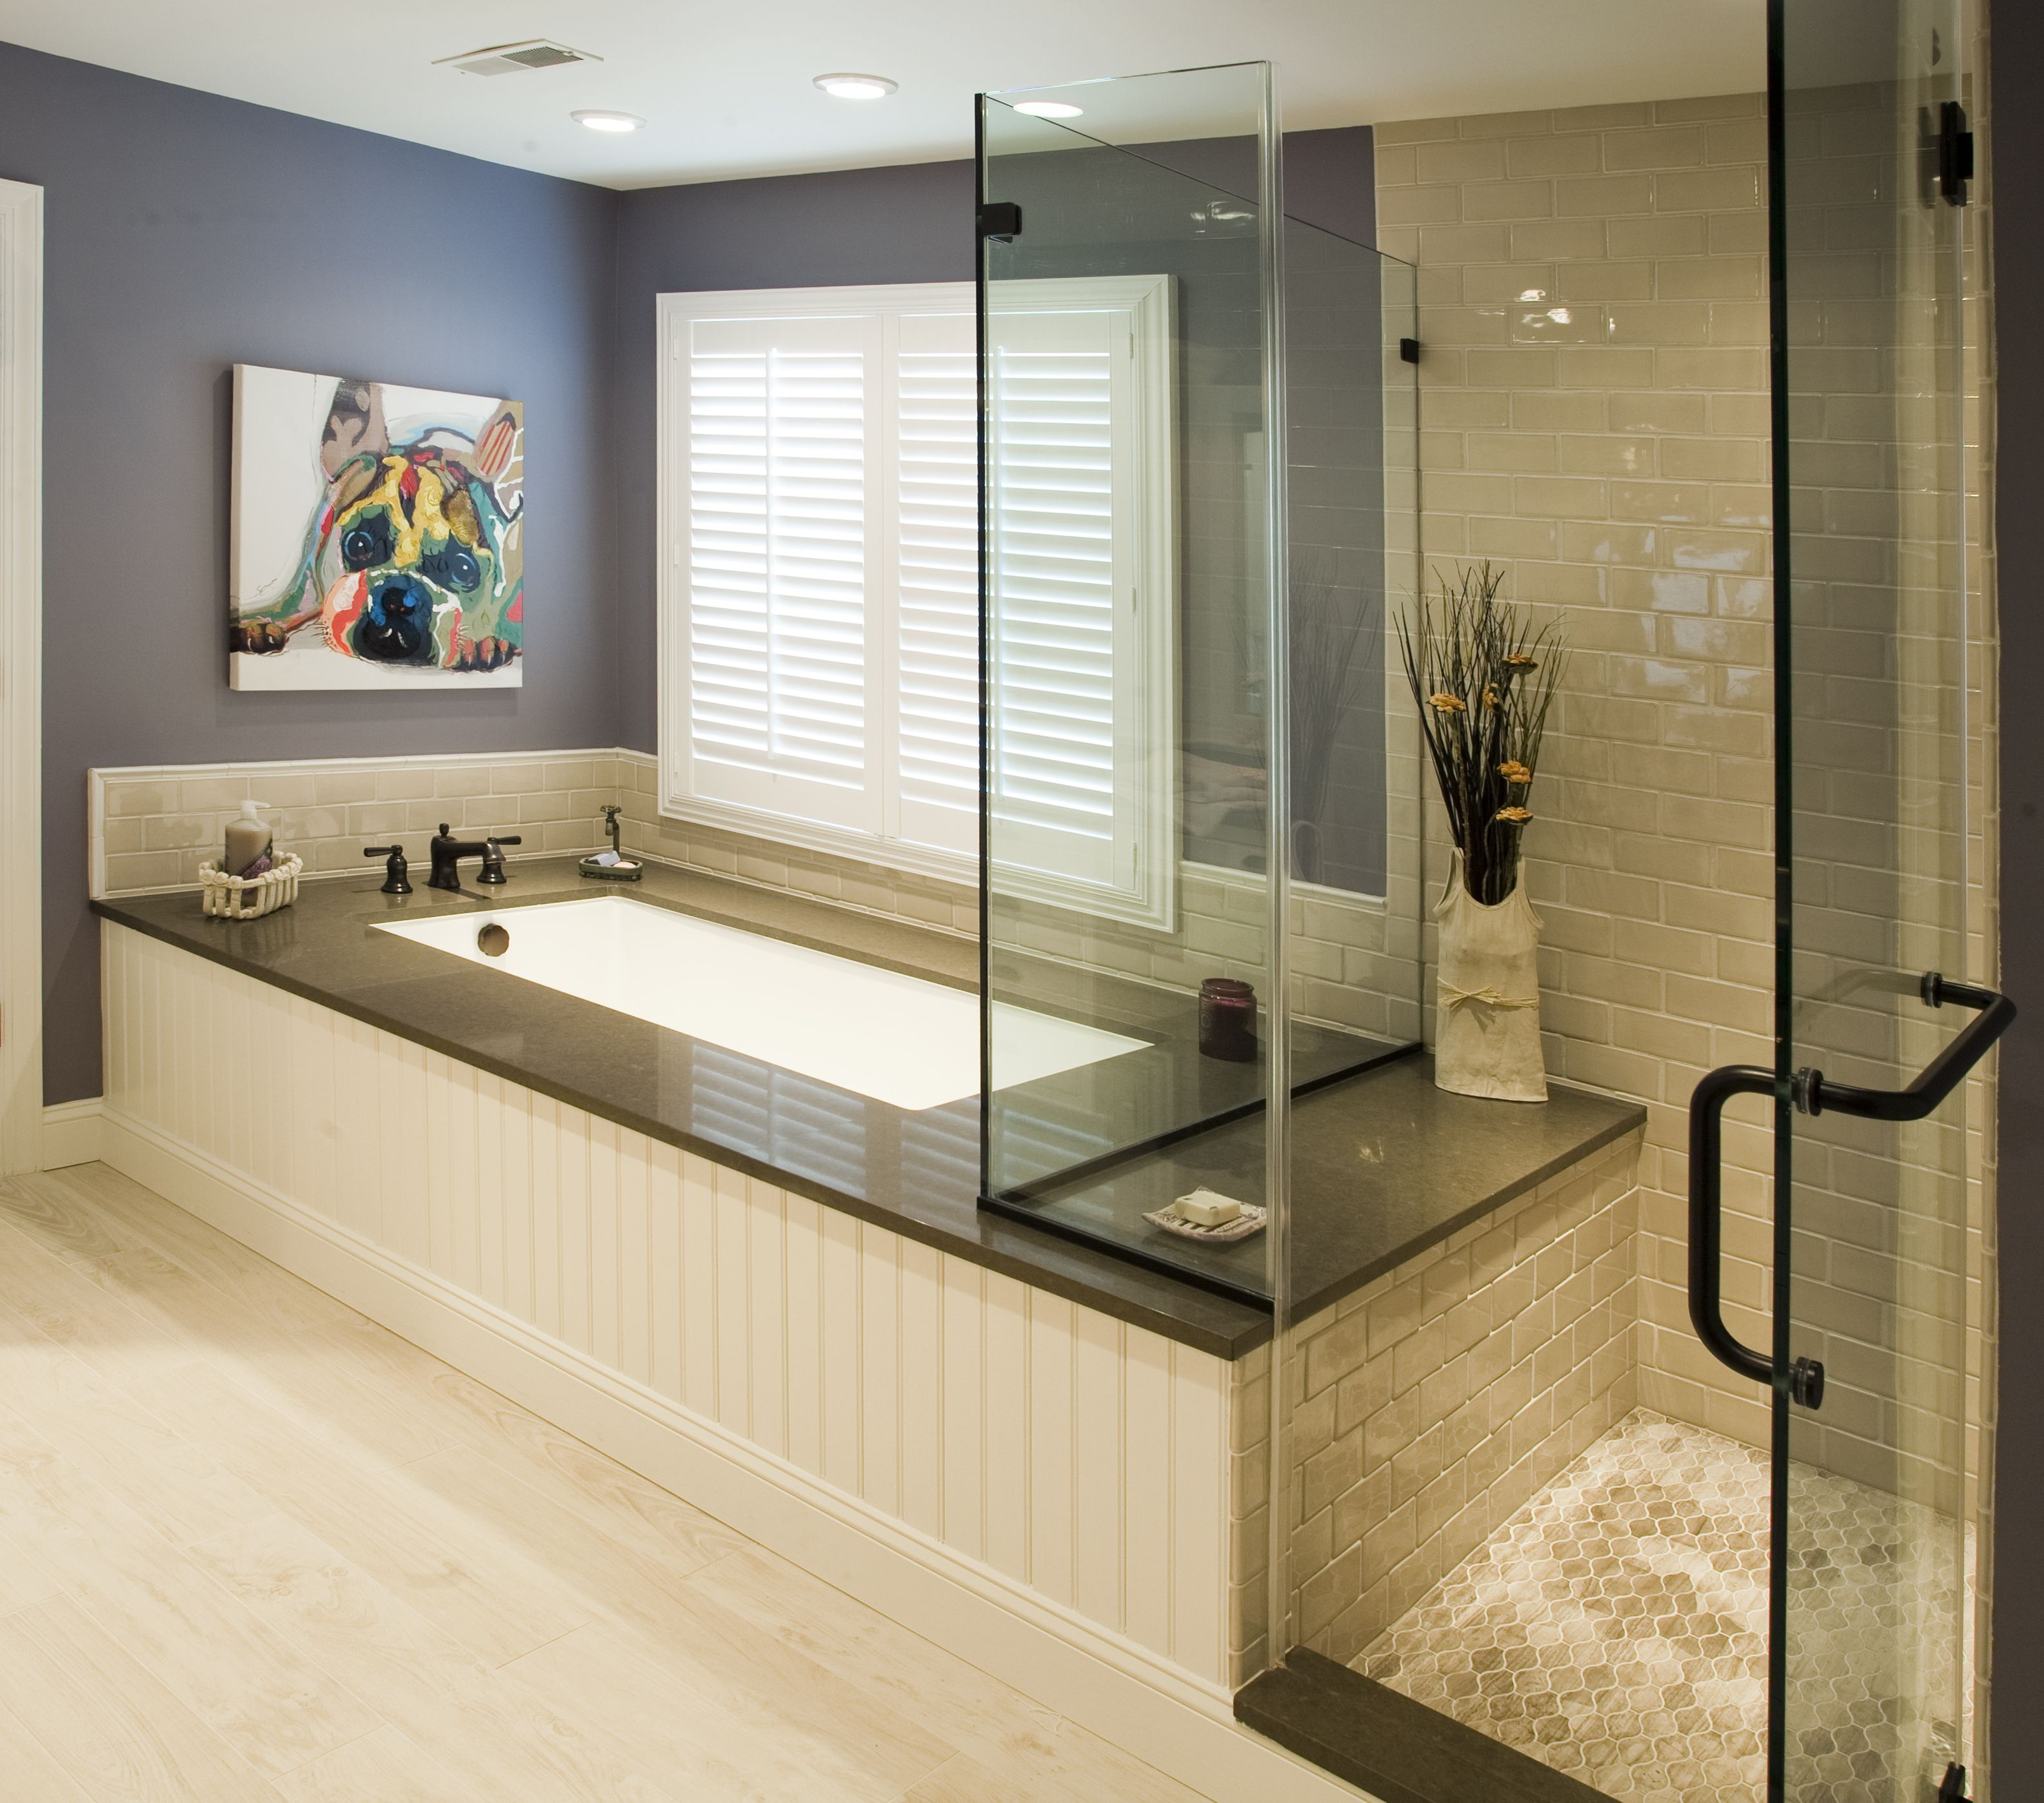 bathroom remodeling leads. Explore Transitional Bathroom, Glass Showers, And More! Bathroom Remodeling Leads